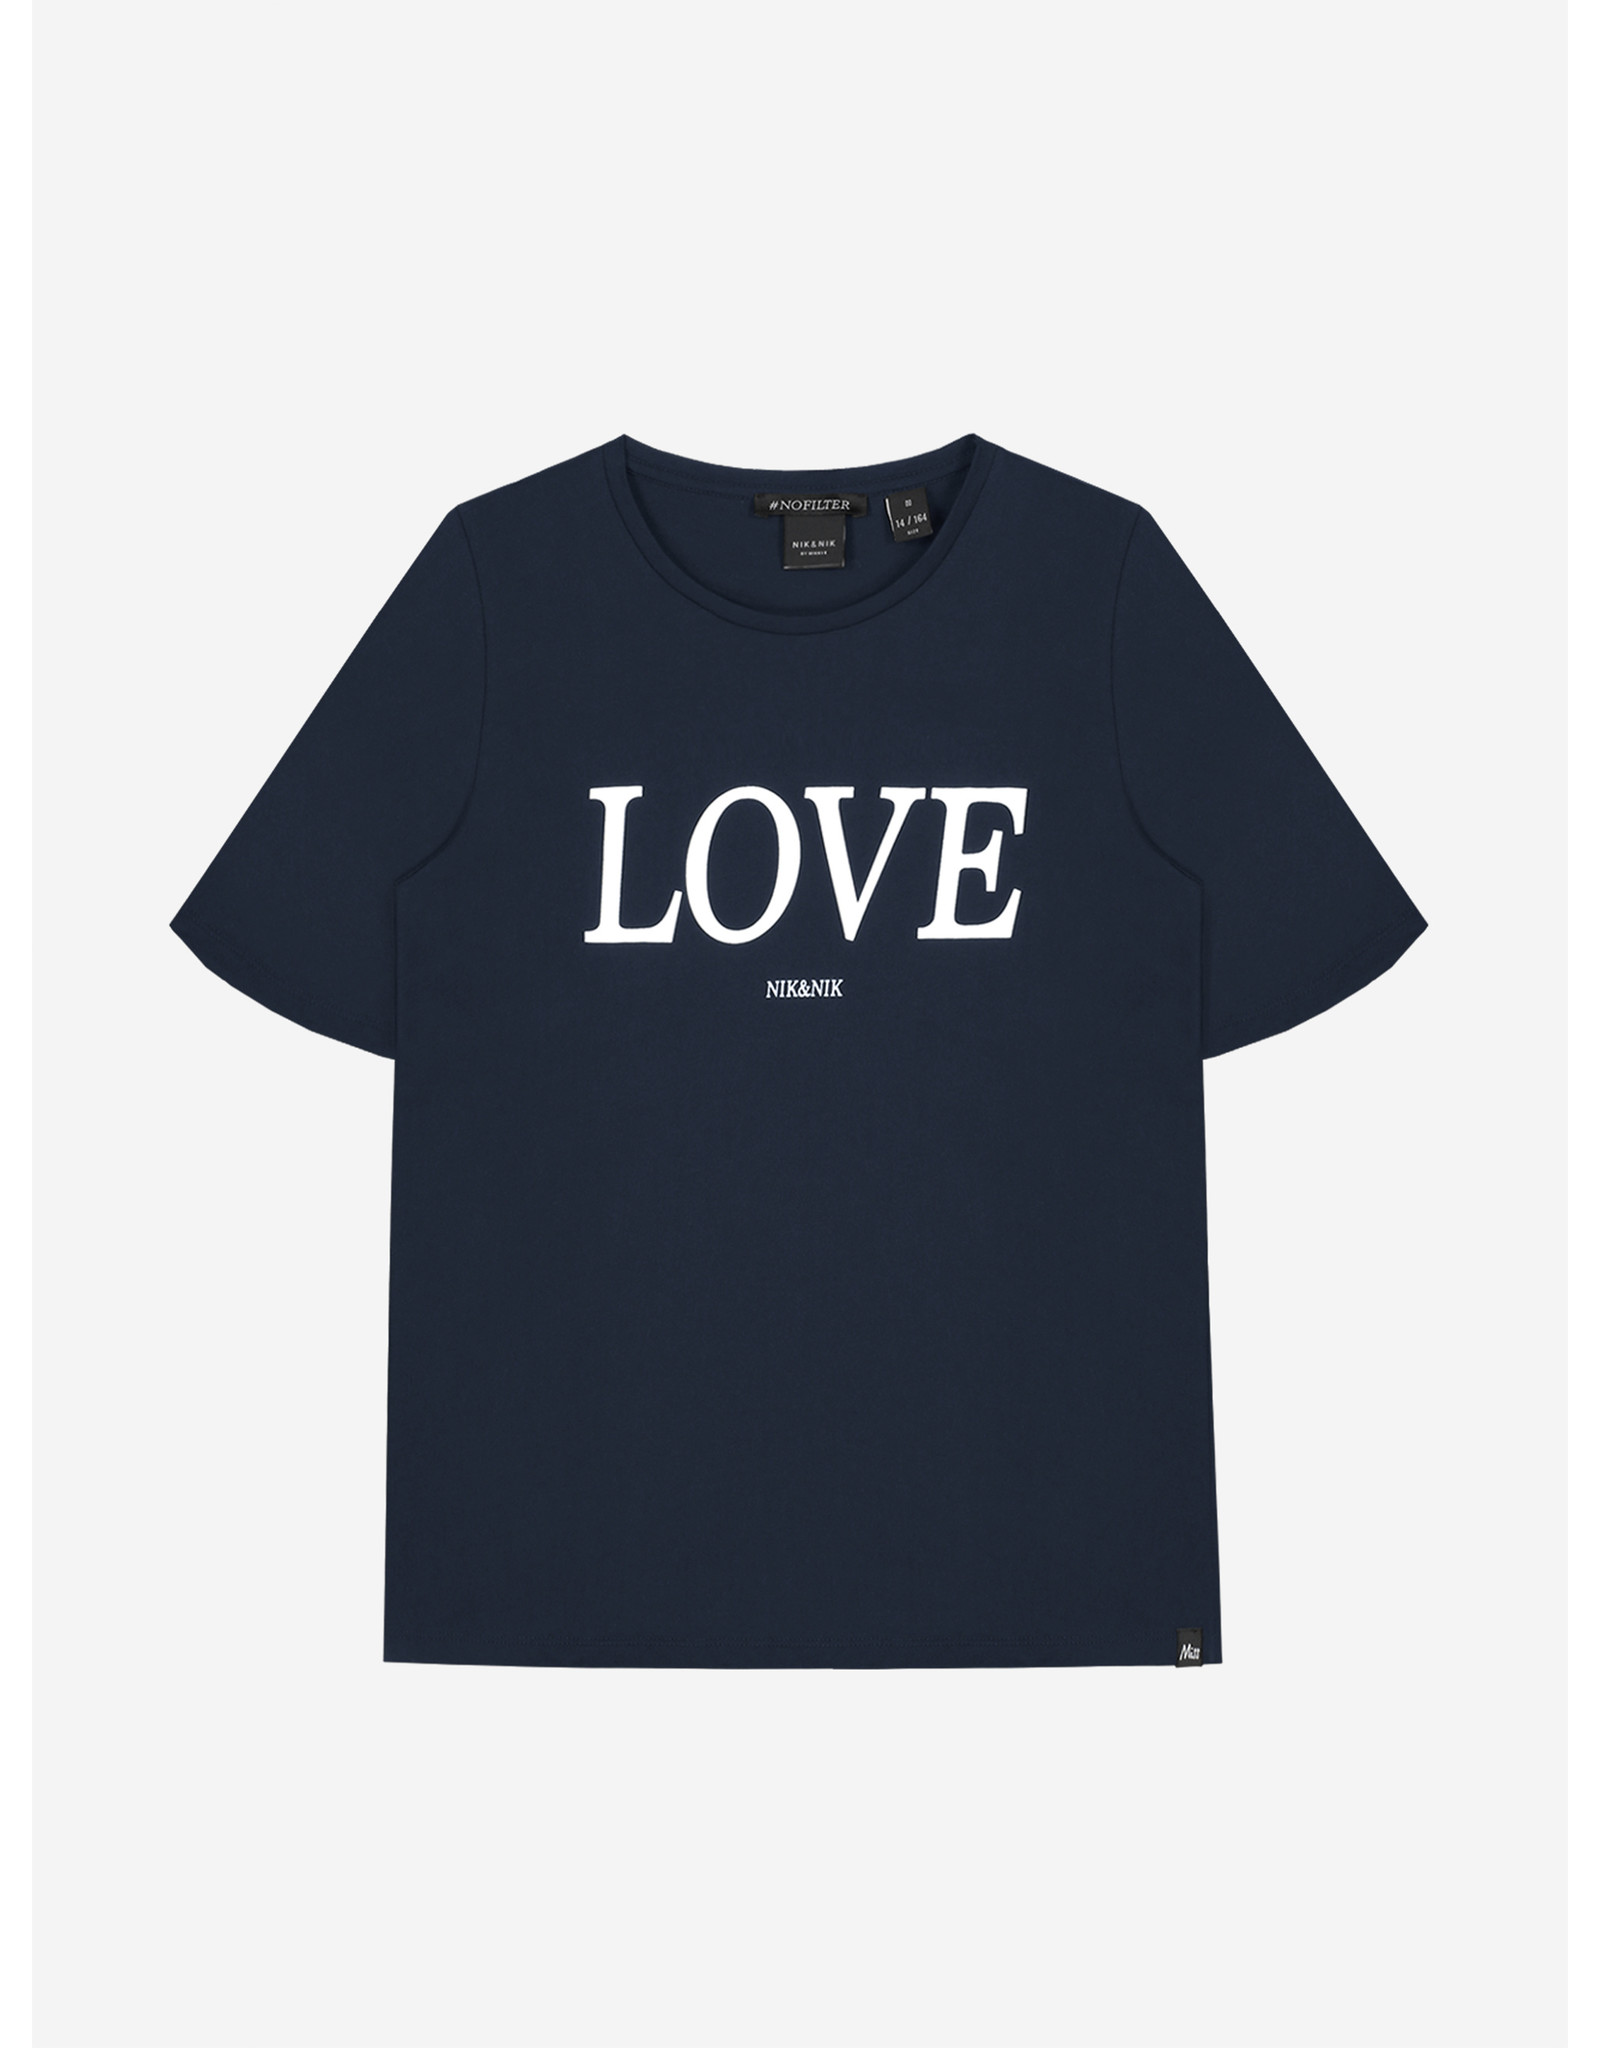 Nik&Nik NIK&NIK Lora Love T-shirt Royal Blue